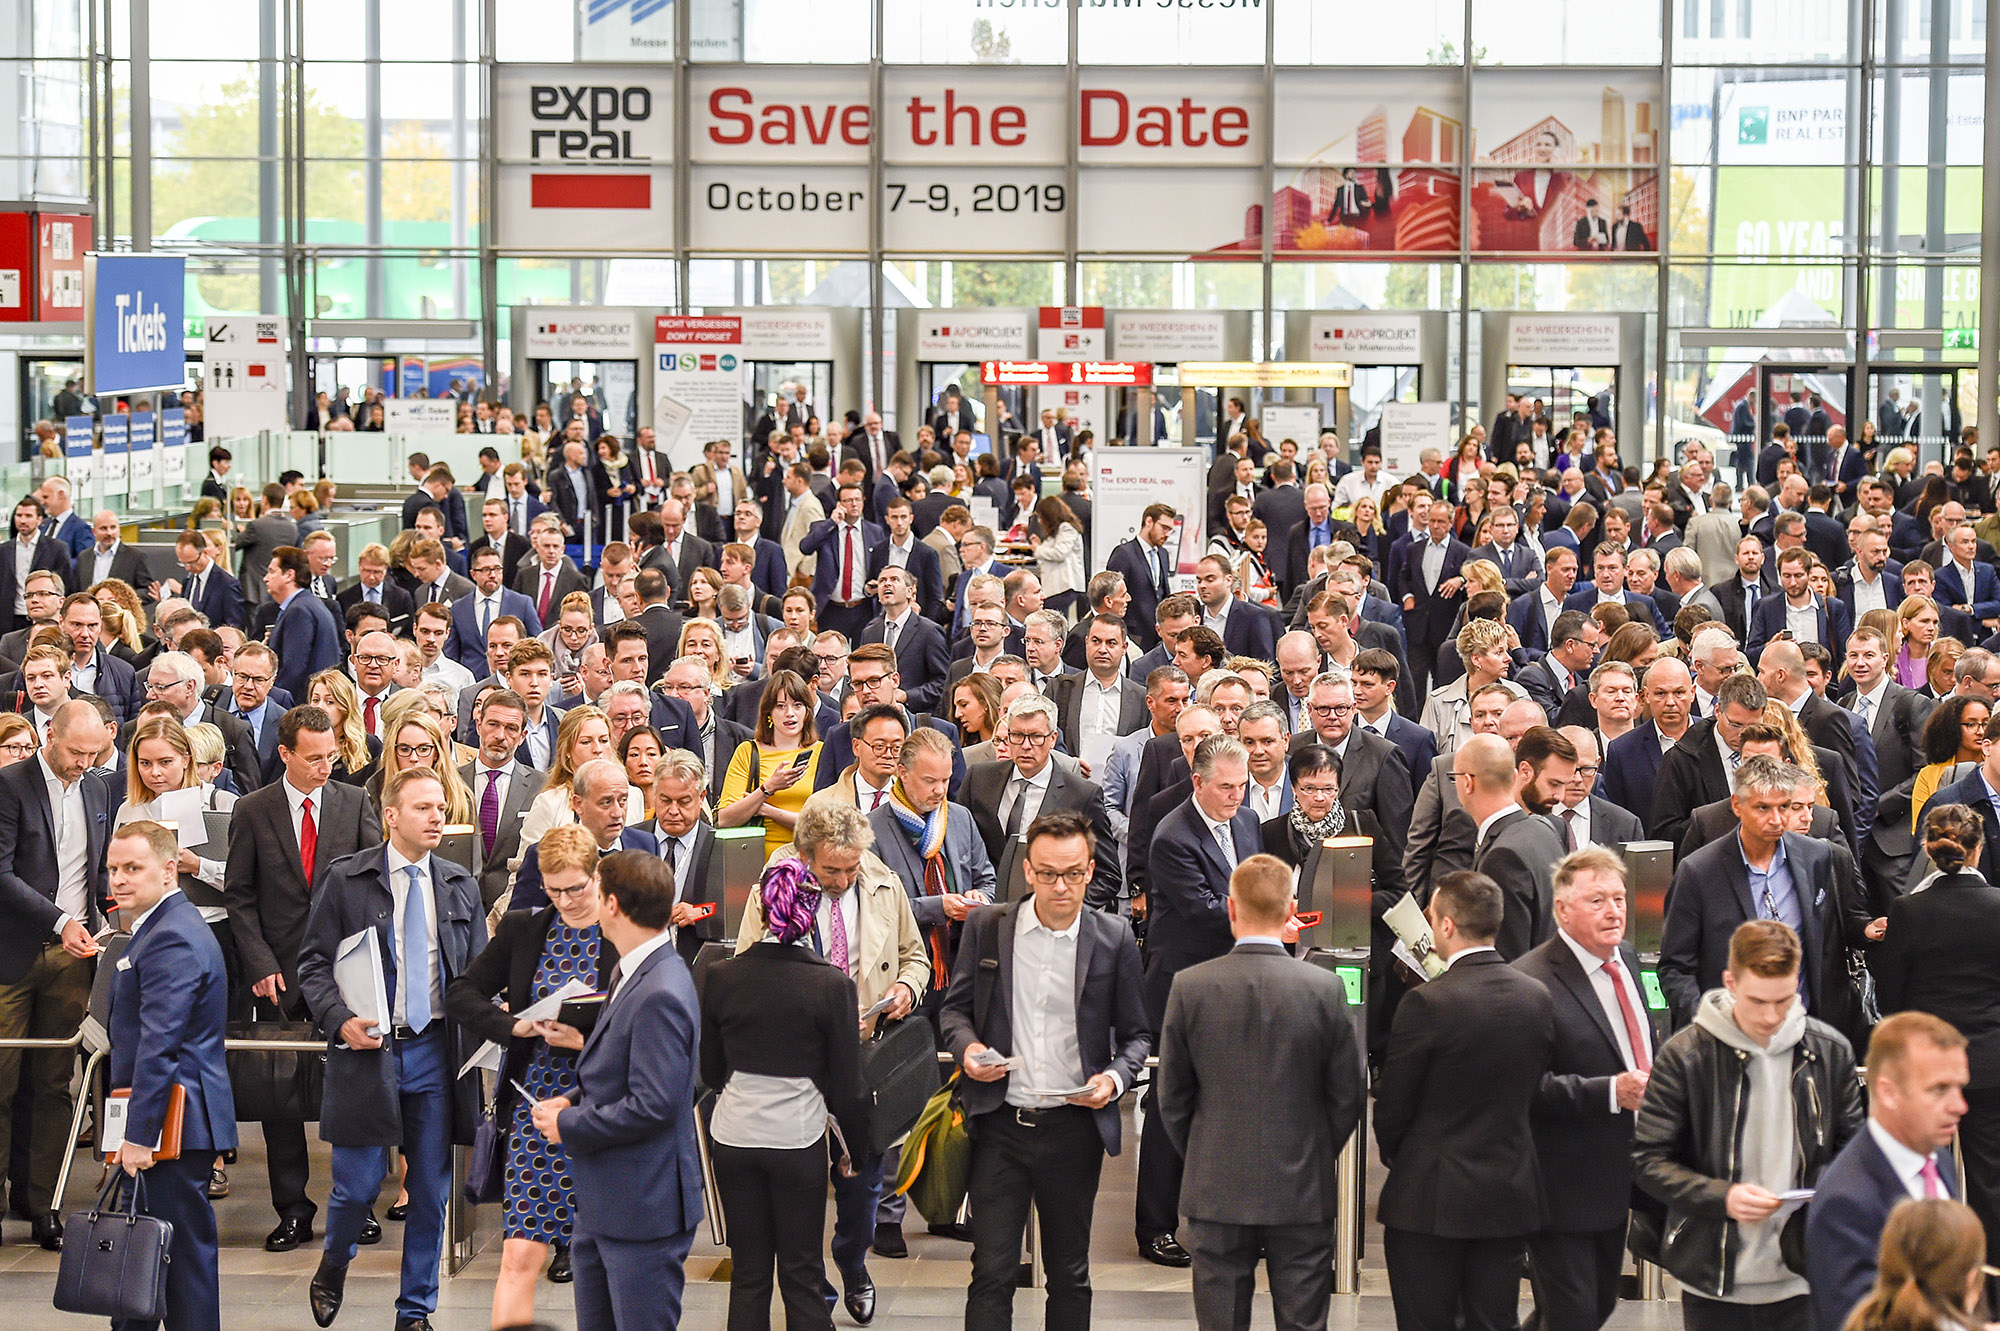 MODESTA REAL ESTATE AUF DER EXPO REAL 2018